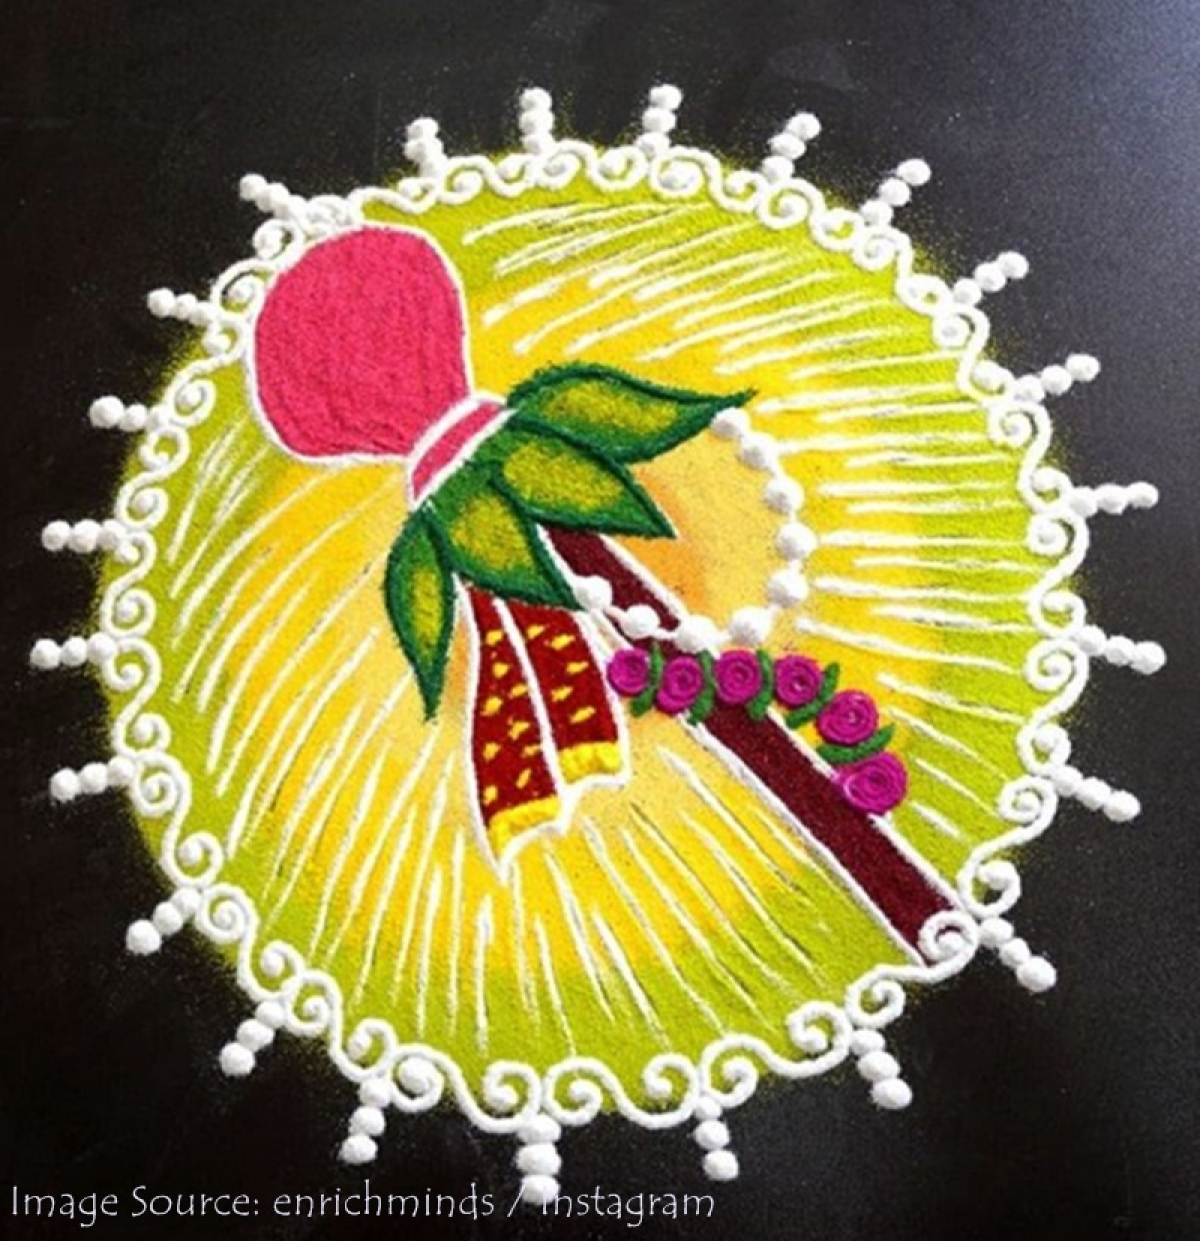 Gudi Padwa 2019: Brighten up your home with these easy rangoli patterns